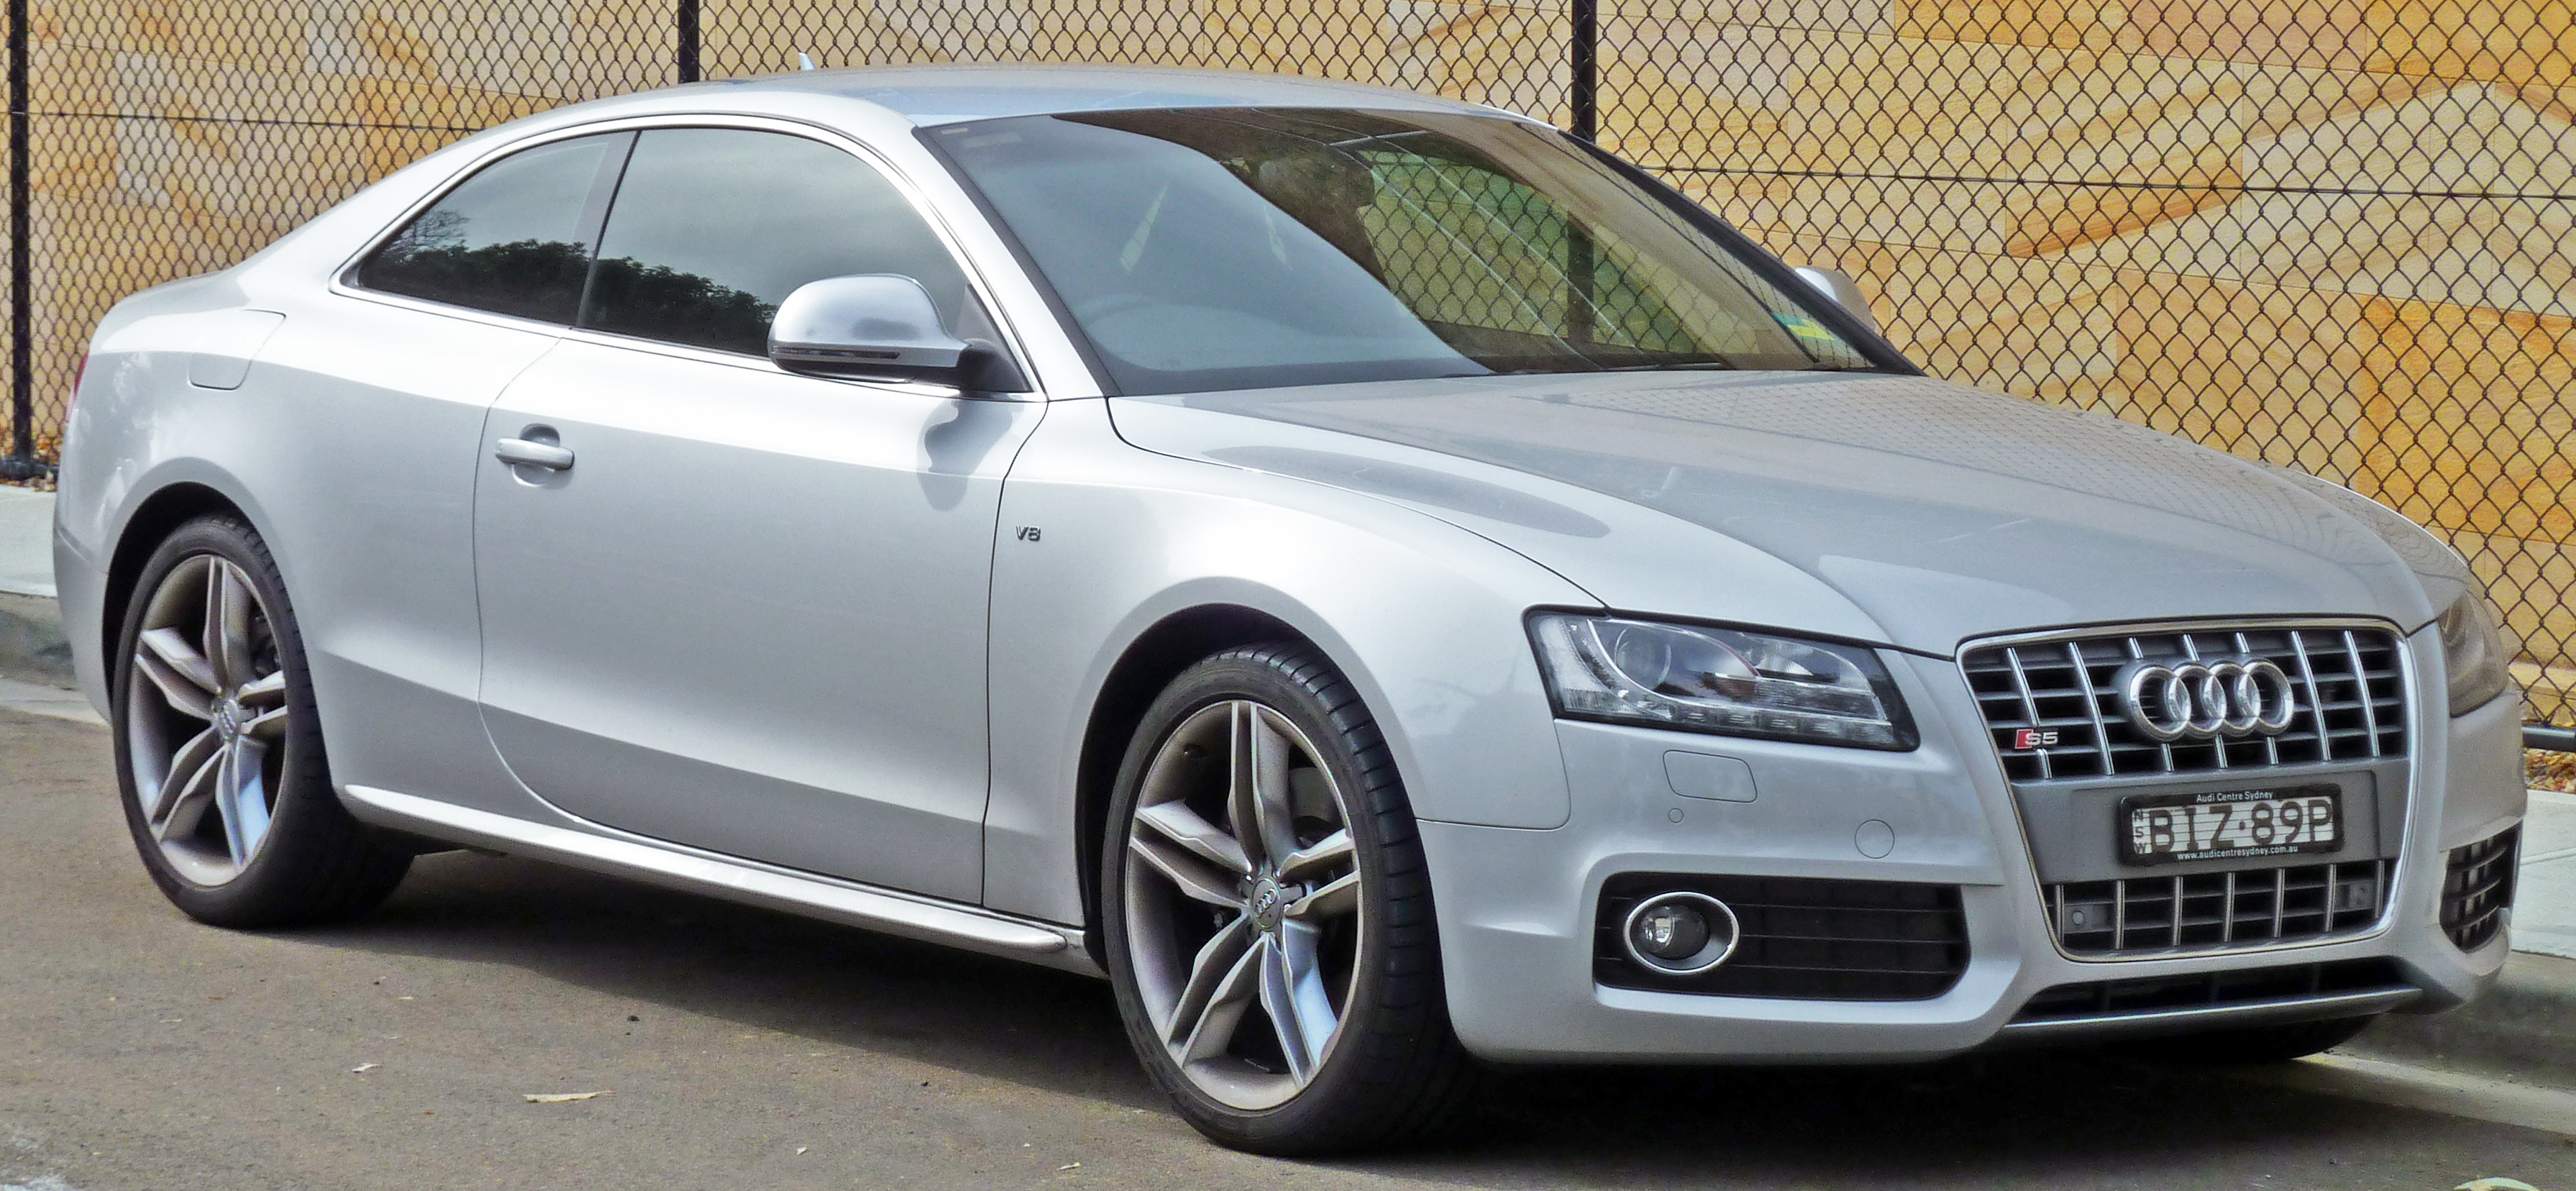 File:2007-2010 Audi S5 (8T) coupe 02.jpg - Wikimedia Commons